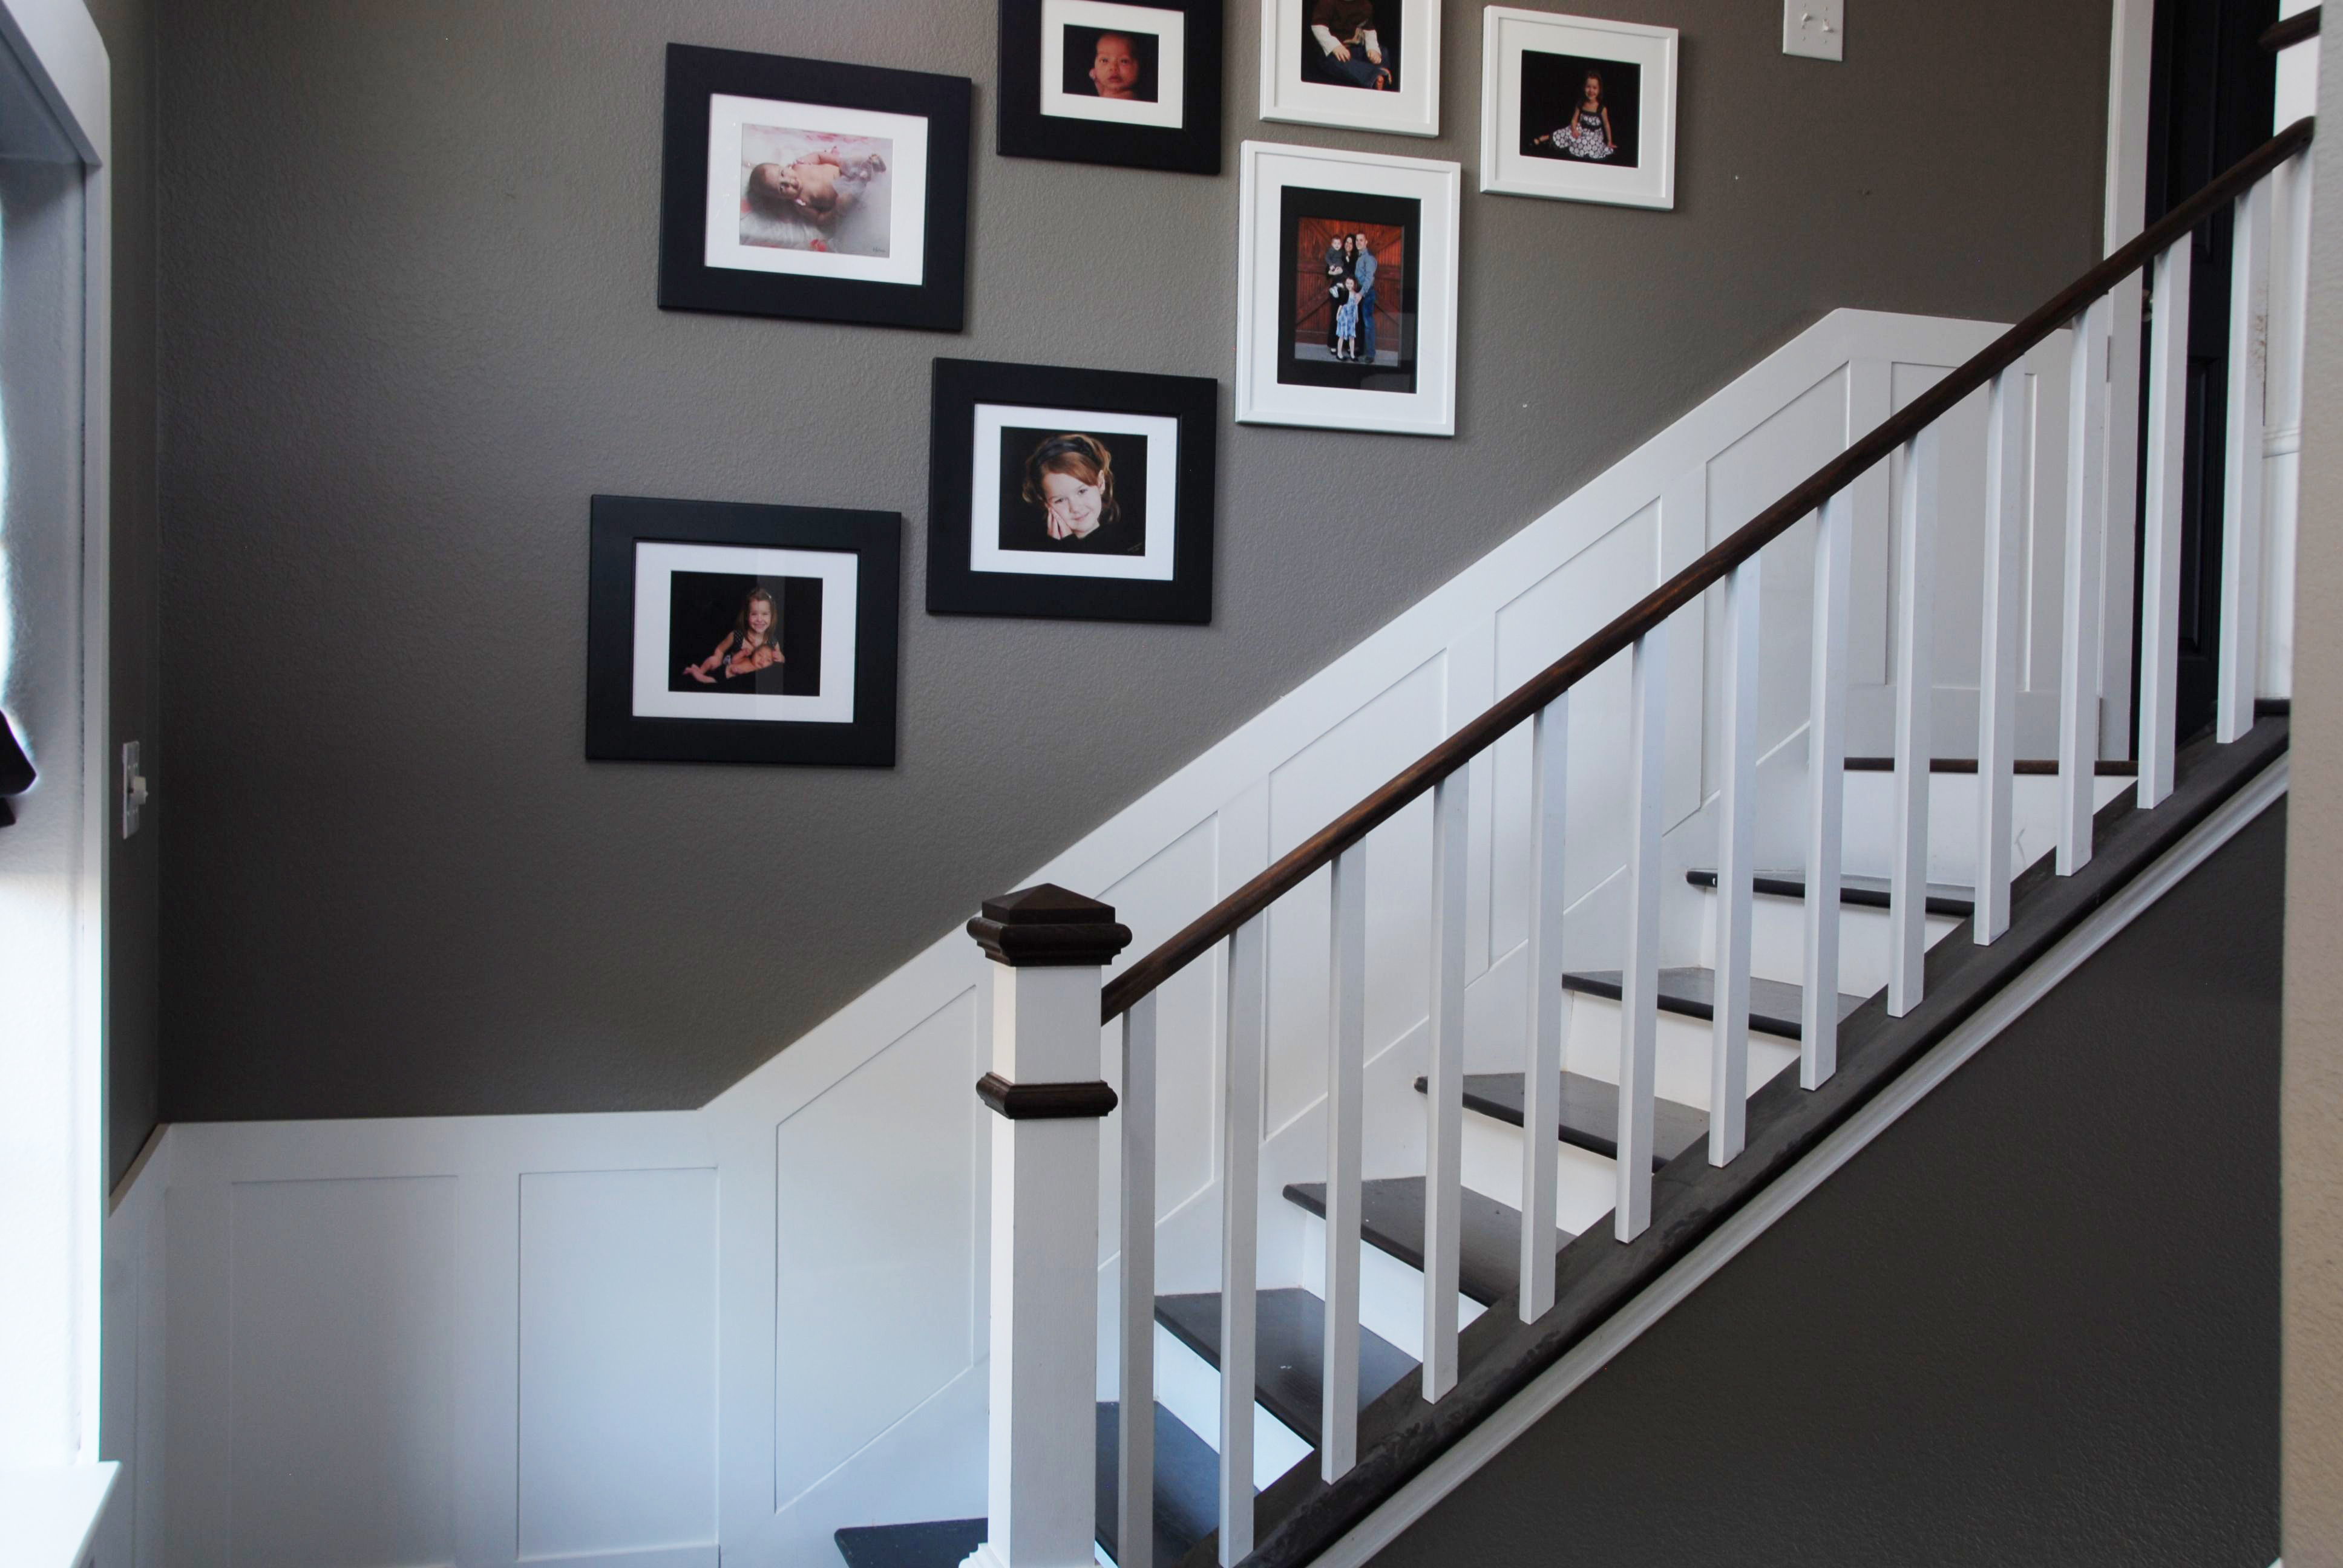 wainscoting stairway with A Better First Impression on Raised Panel Wainscoting Ideas as well Wainscoting On Stairs together with 339318153164927146 besides Crown Molding And Wainscoting together with Photo.